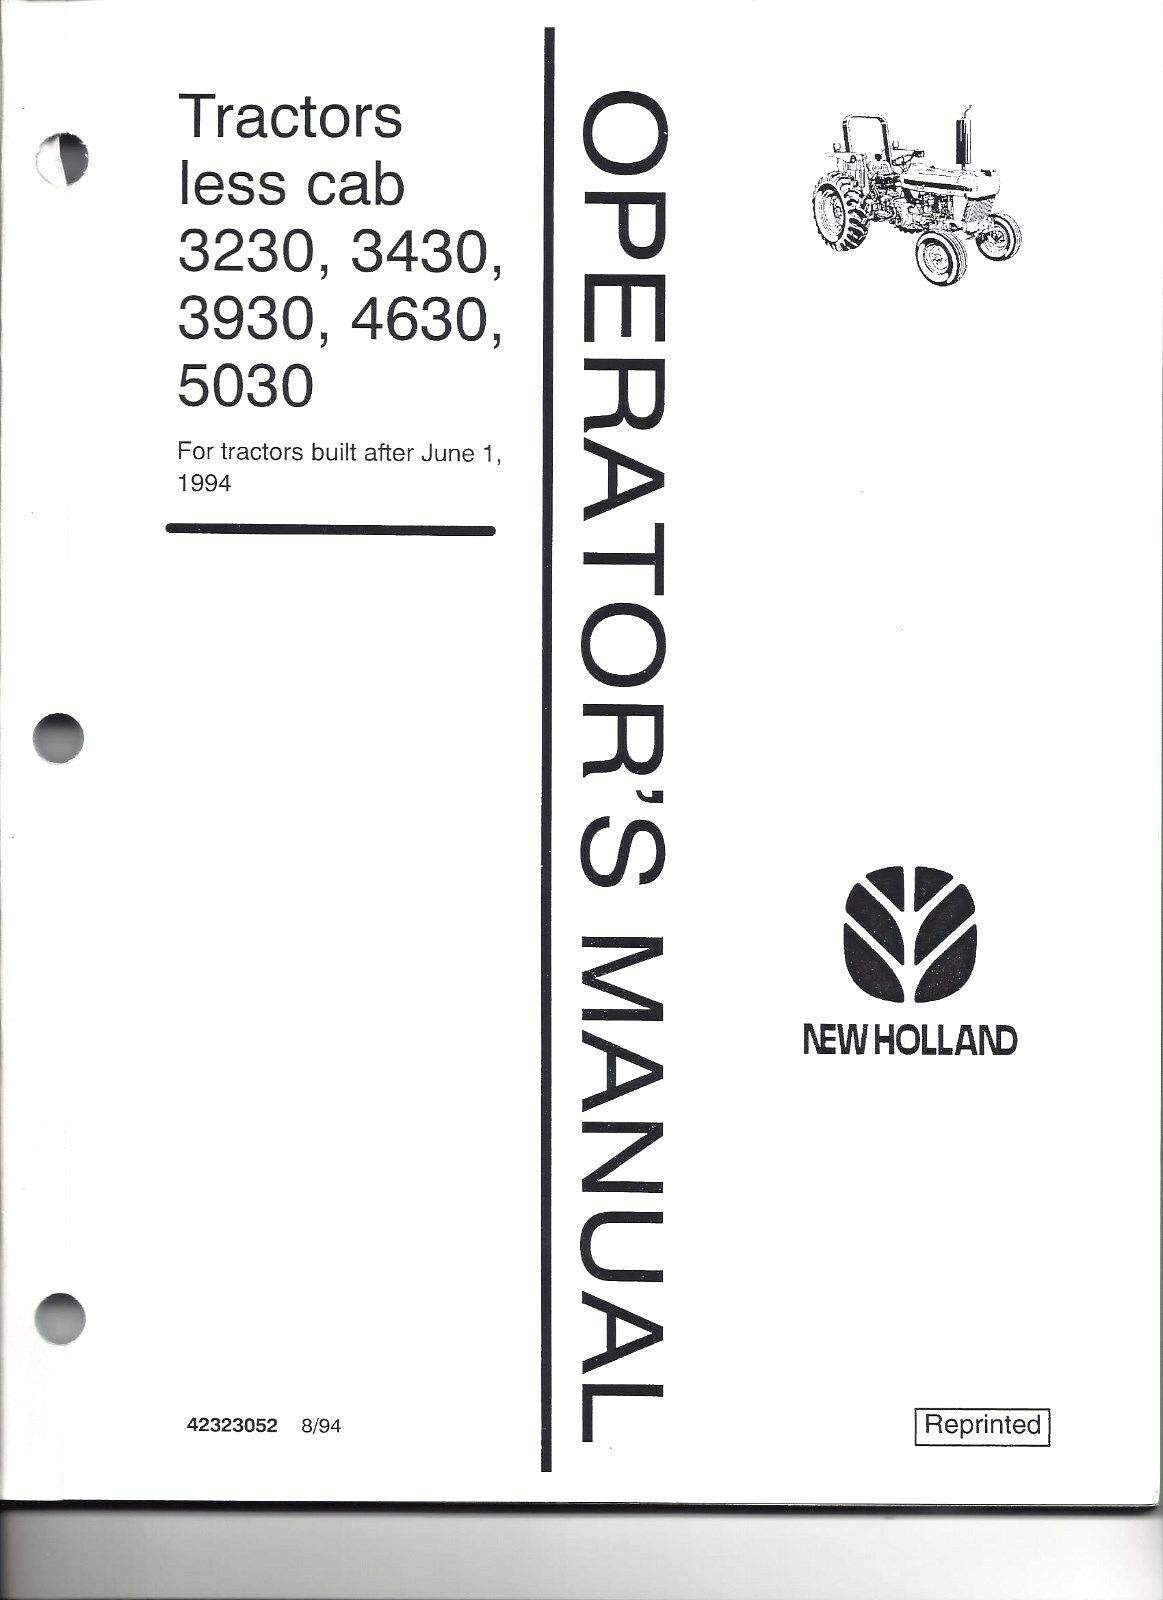 New Holland 4630 Operators Manual Ford 3230 Wiring Diagram 3430 3930 5030 Operator 6 94 Up Rh Picclick Com 5630